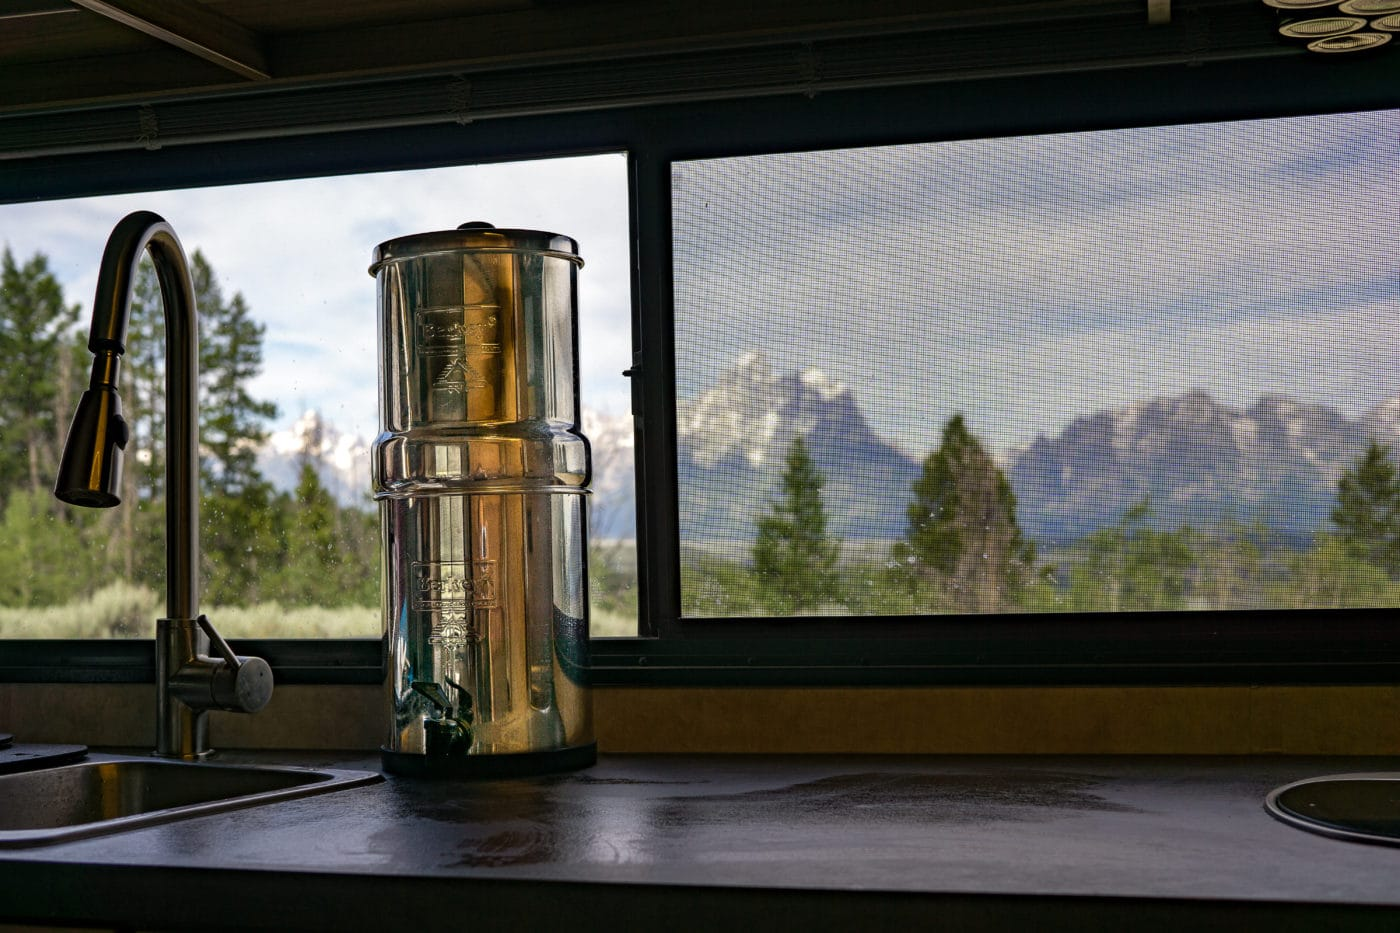 water filter system sitting on counter in rv camper kitchen